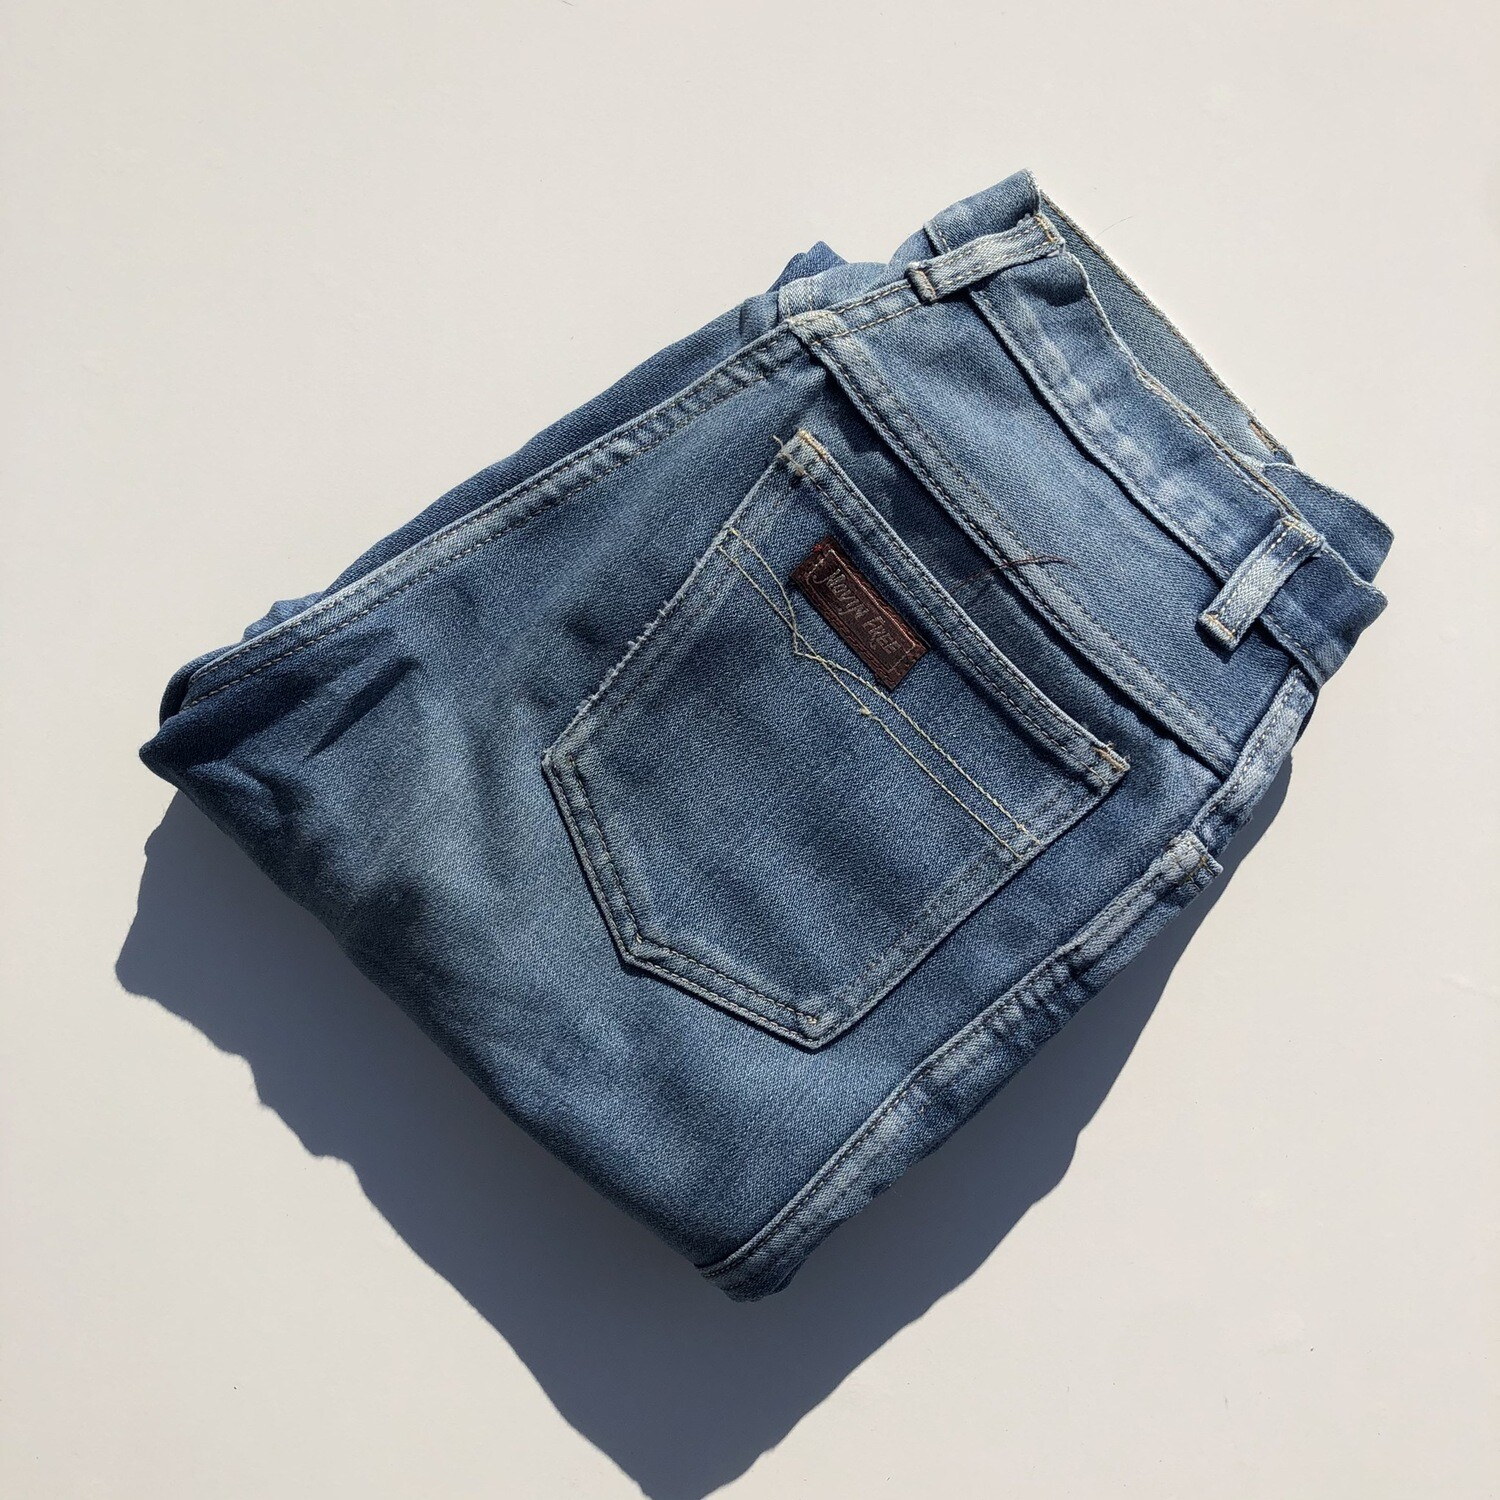 Vintage Moving Free High-Waisted Jeans